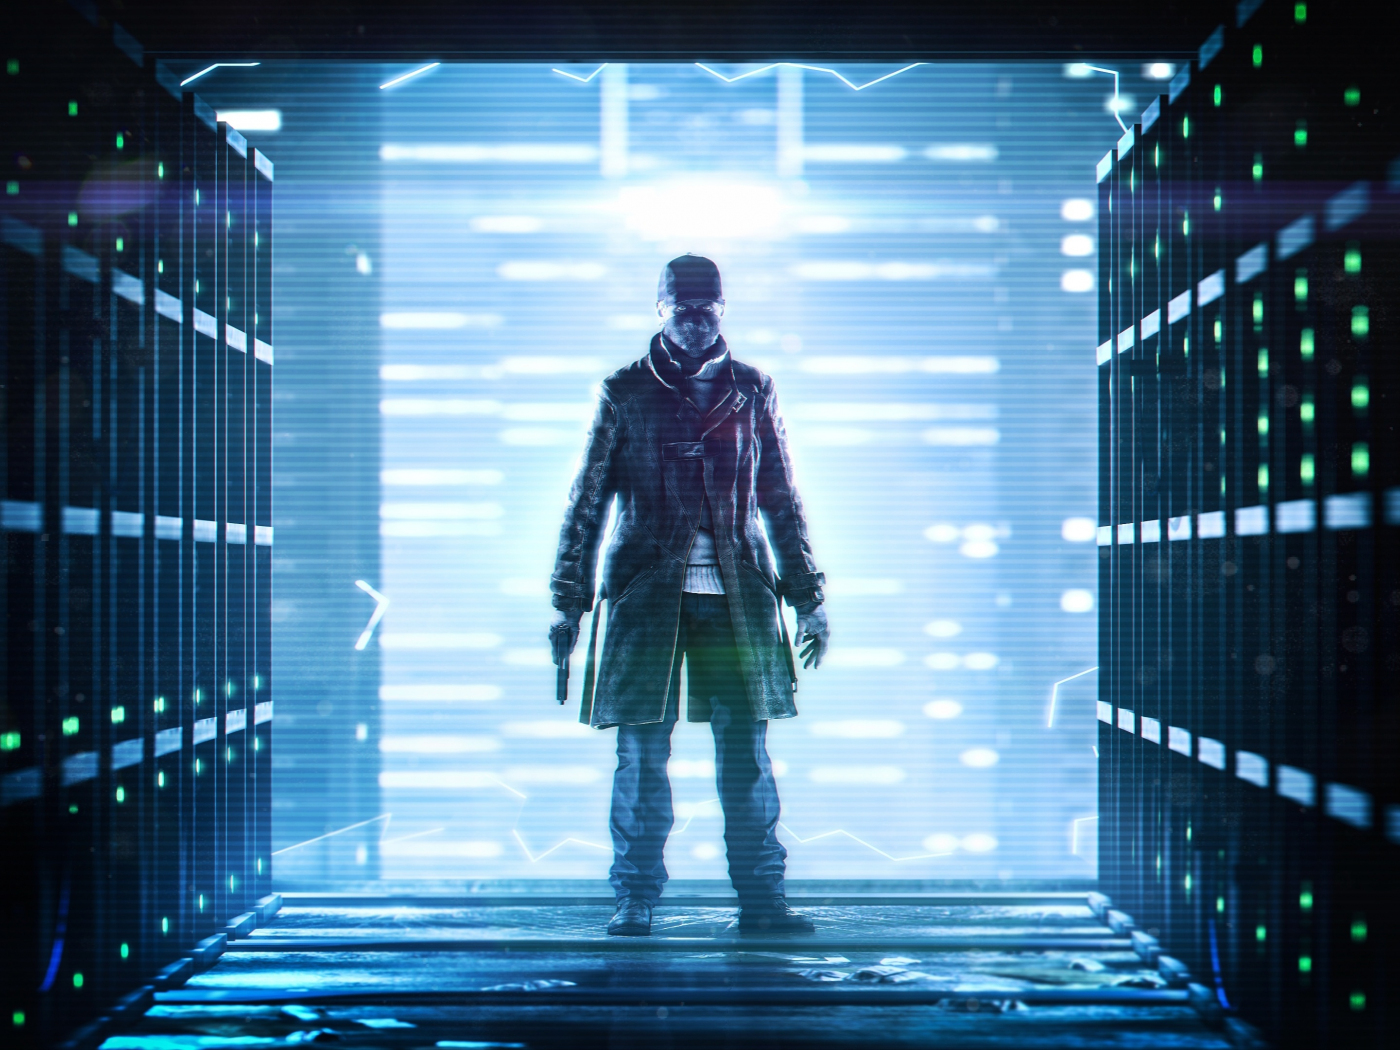 Download 1400x1050 Wallpaper Aiden Pearce Video Game Watch